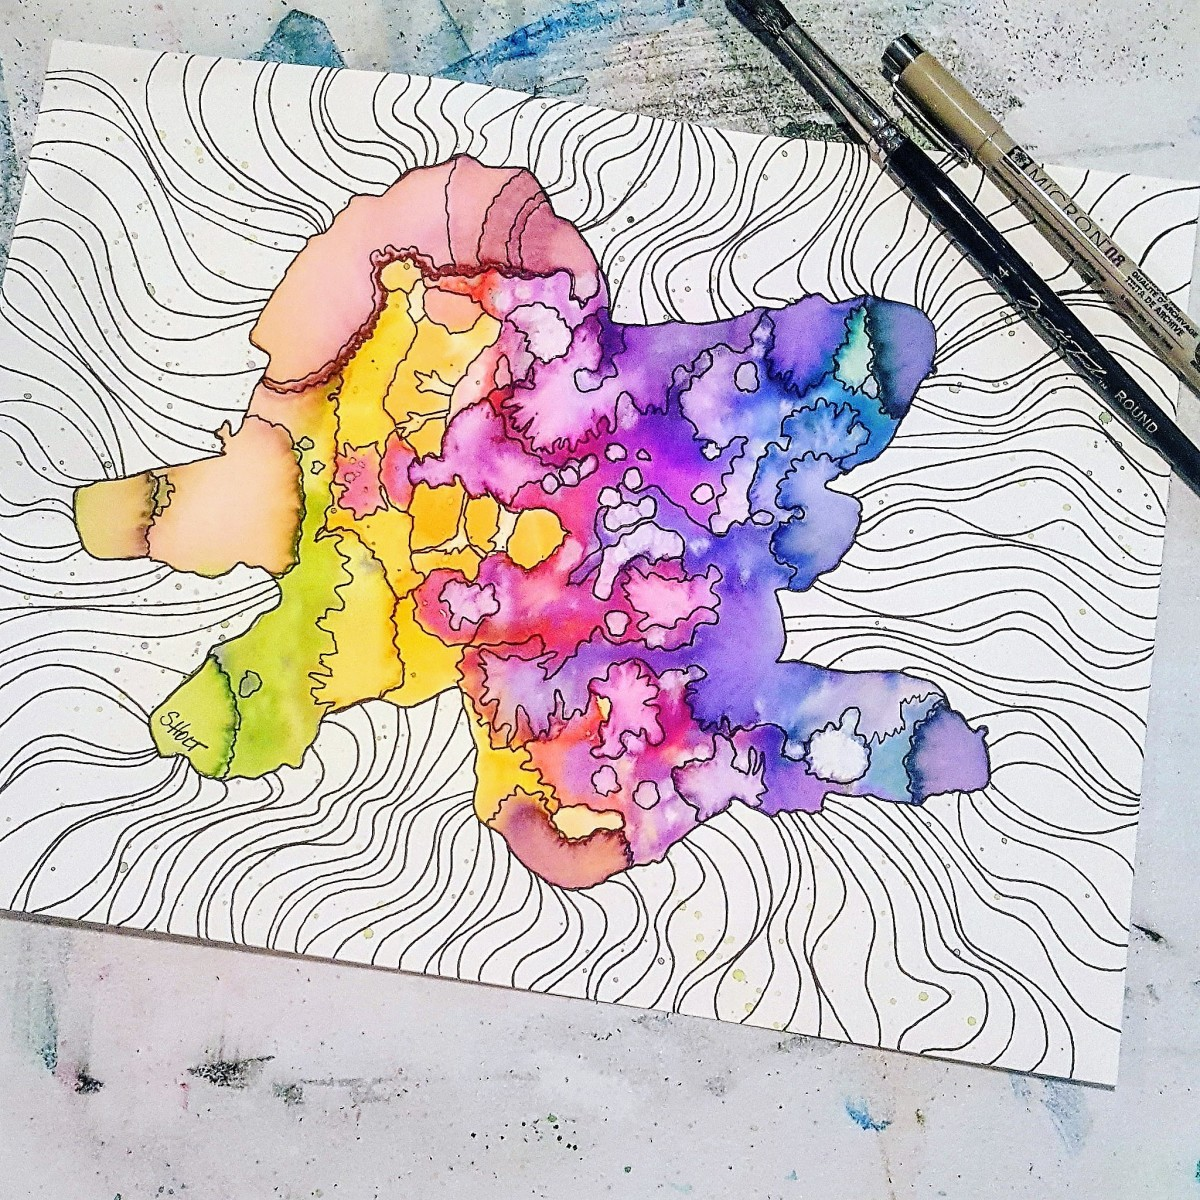 Watercolor created with rainbow colors and micron ink pen.